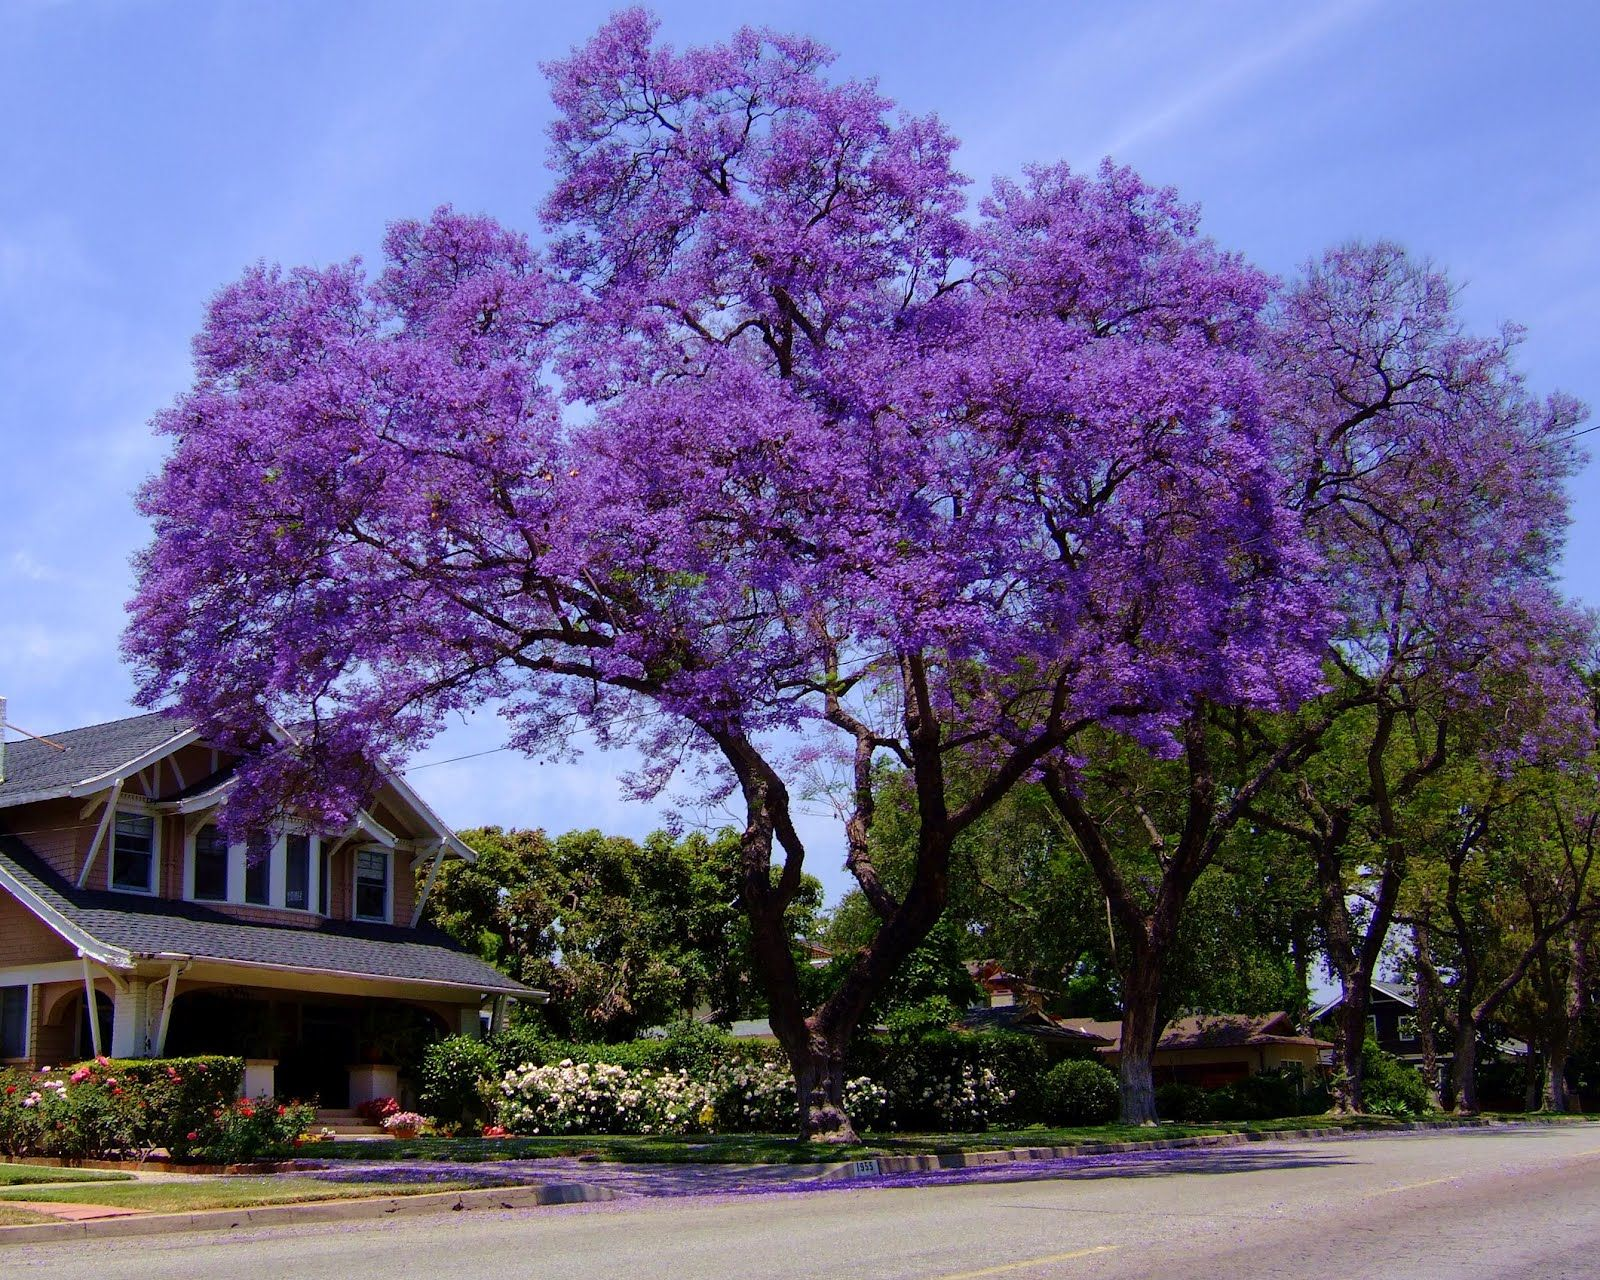 Jacaranda trees pinterest gardens plants and landscaping shop our seed store for the best selling royal empress tree seeds for sale our low tree seed prices cheap shipping and expert dhlflorist Image collections